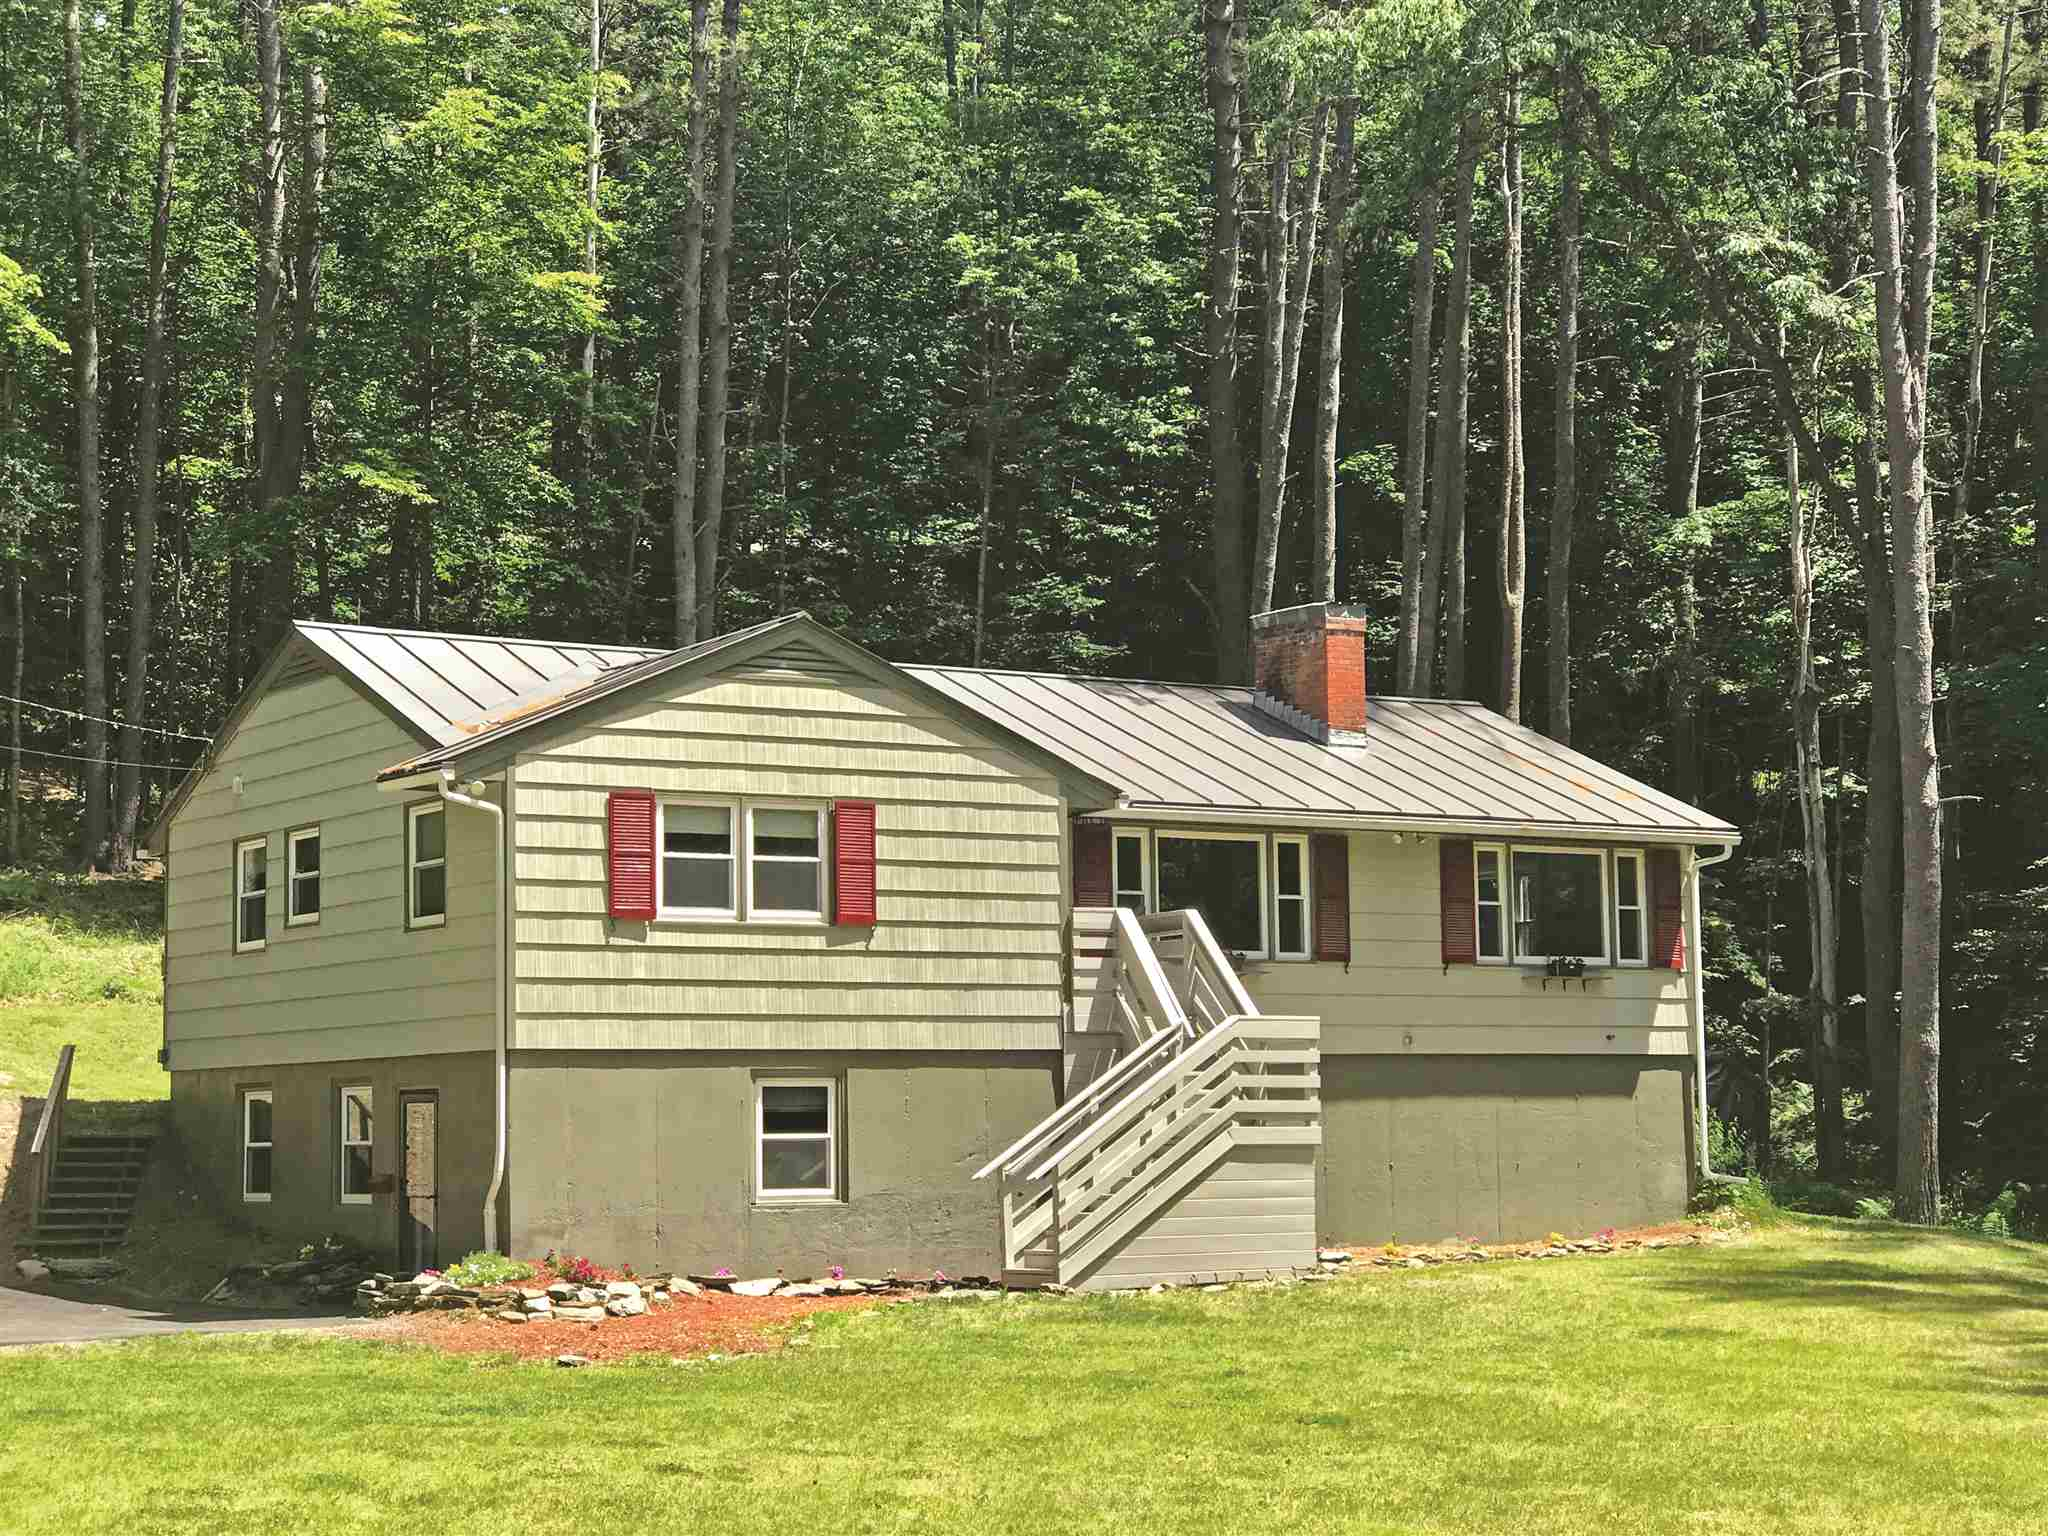 MLS 4702706: 4 Kingsford Road, Hanover NH